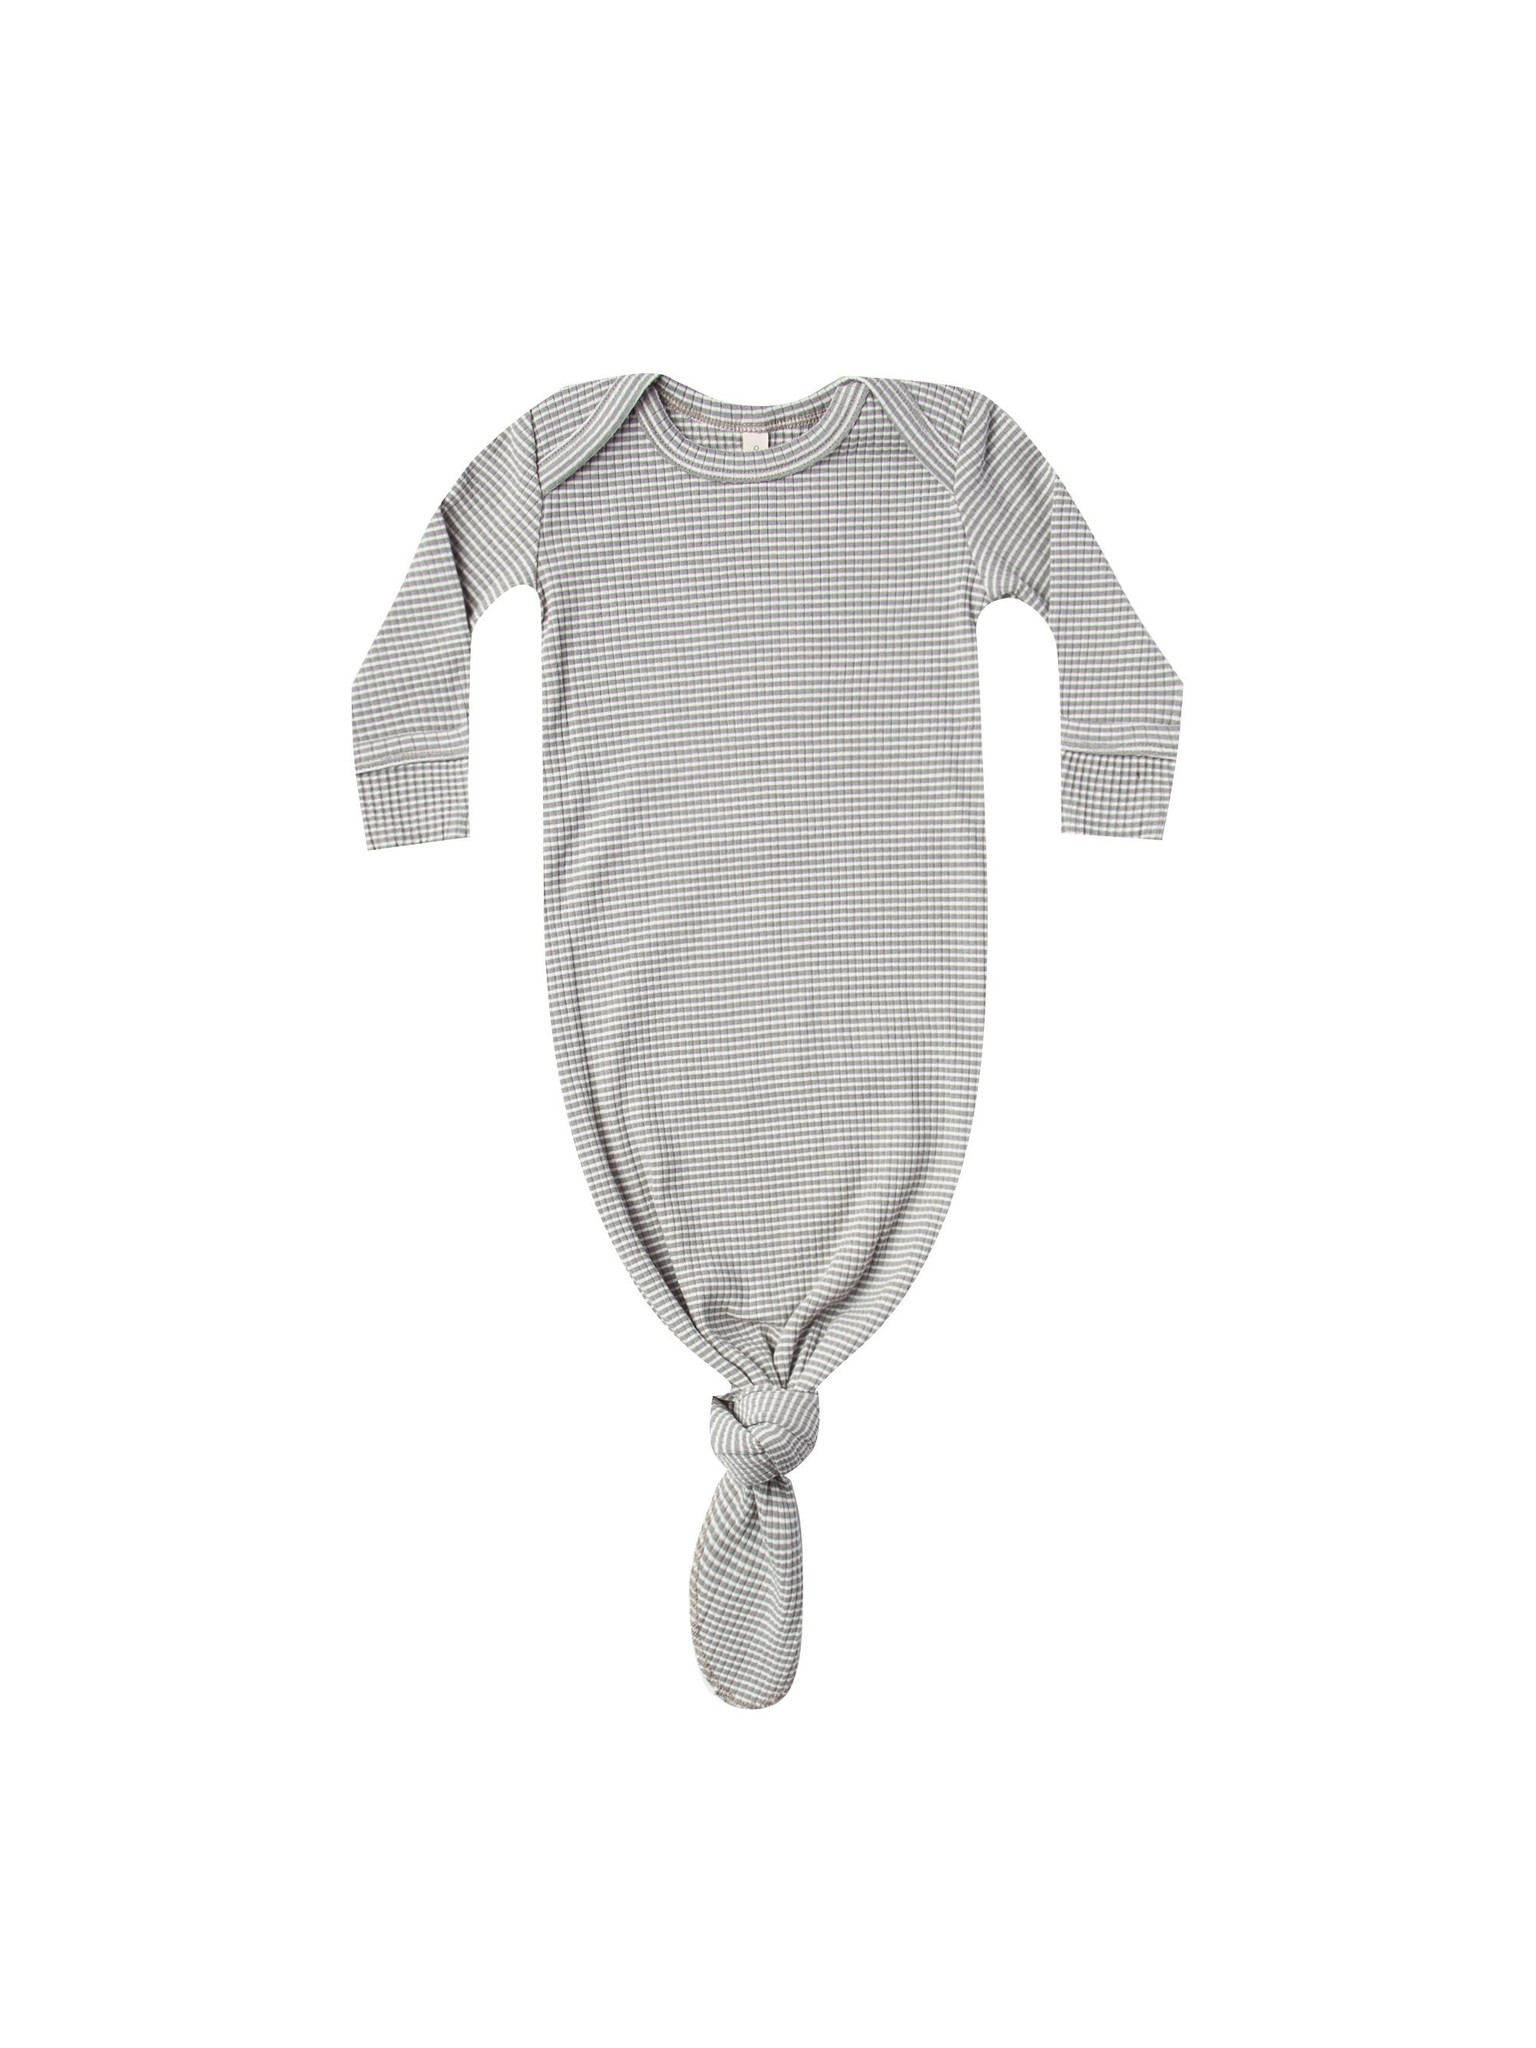 Quincy Mae Quincy Mae Organic Ribbed Jersey Knotted Baby Gown - Eucalyptus Stripe